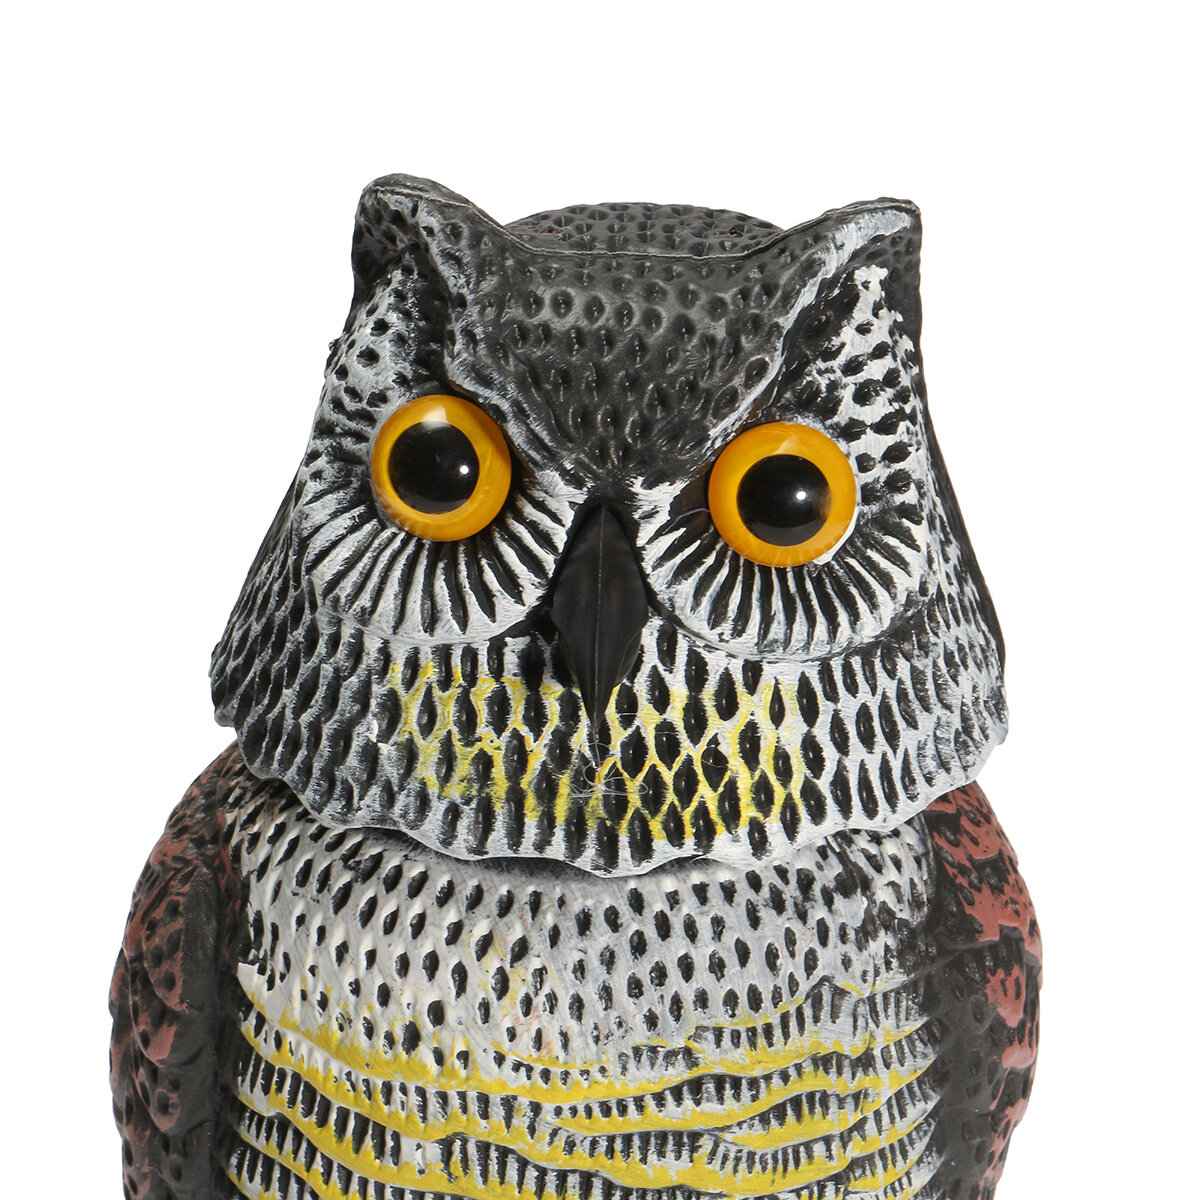 Artificial Resin Owl with Rotating Head Garden Yard Landscape Ornament Outdoor Hunting Decoy